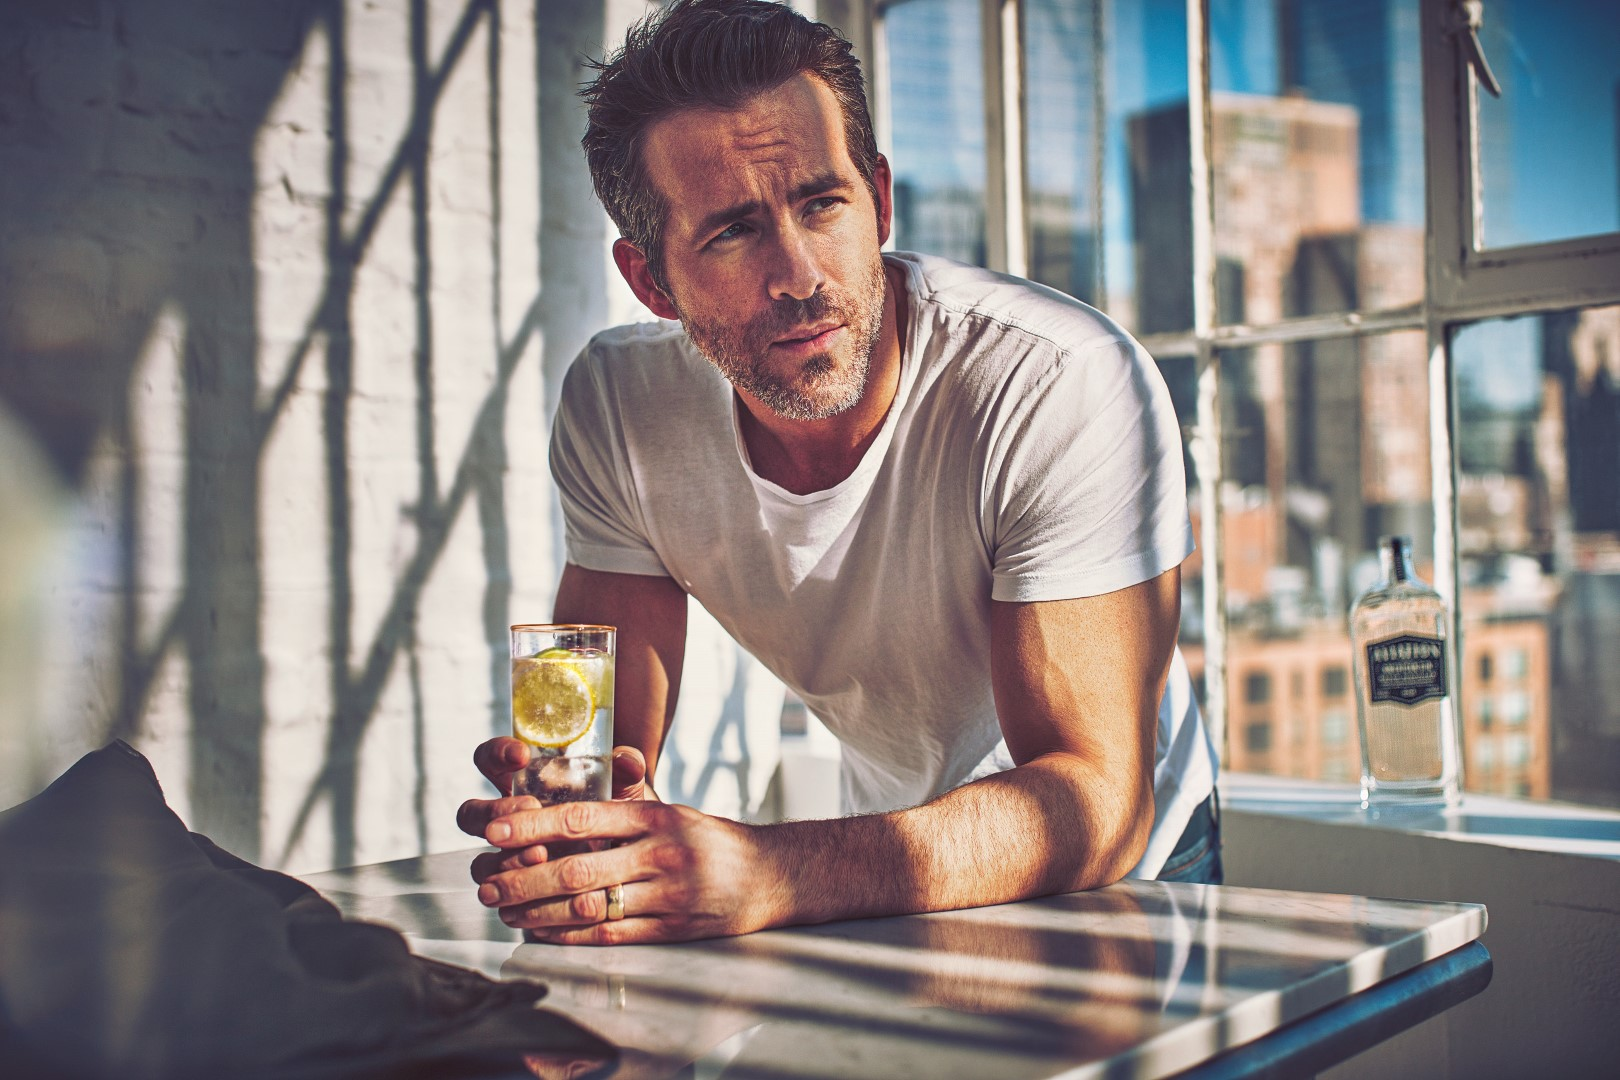 Aviation american gin with lemon ryan reynolds - Ryan Reynolds喝一口就爱上的琴酒:Aviation Gin